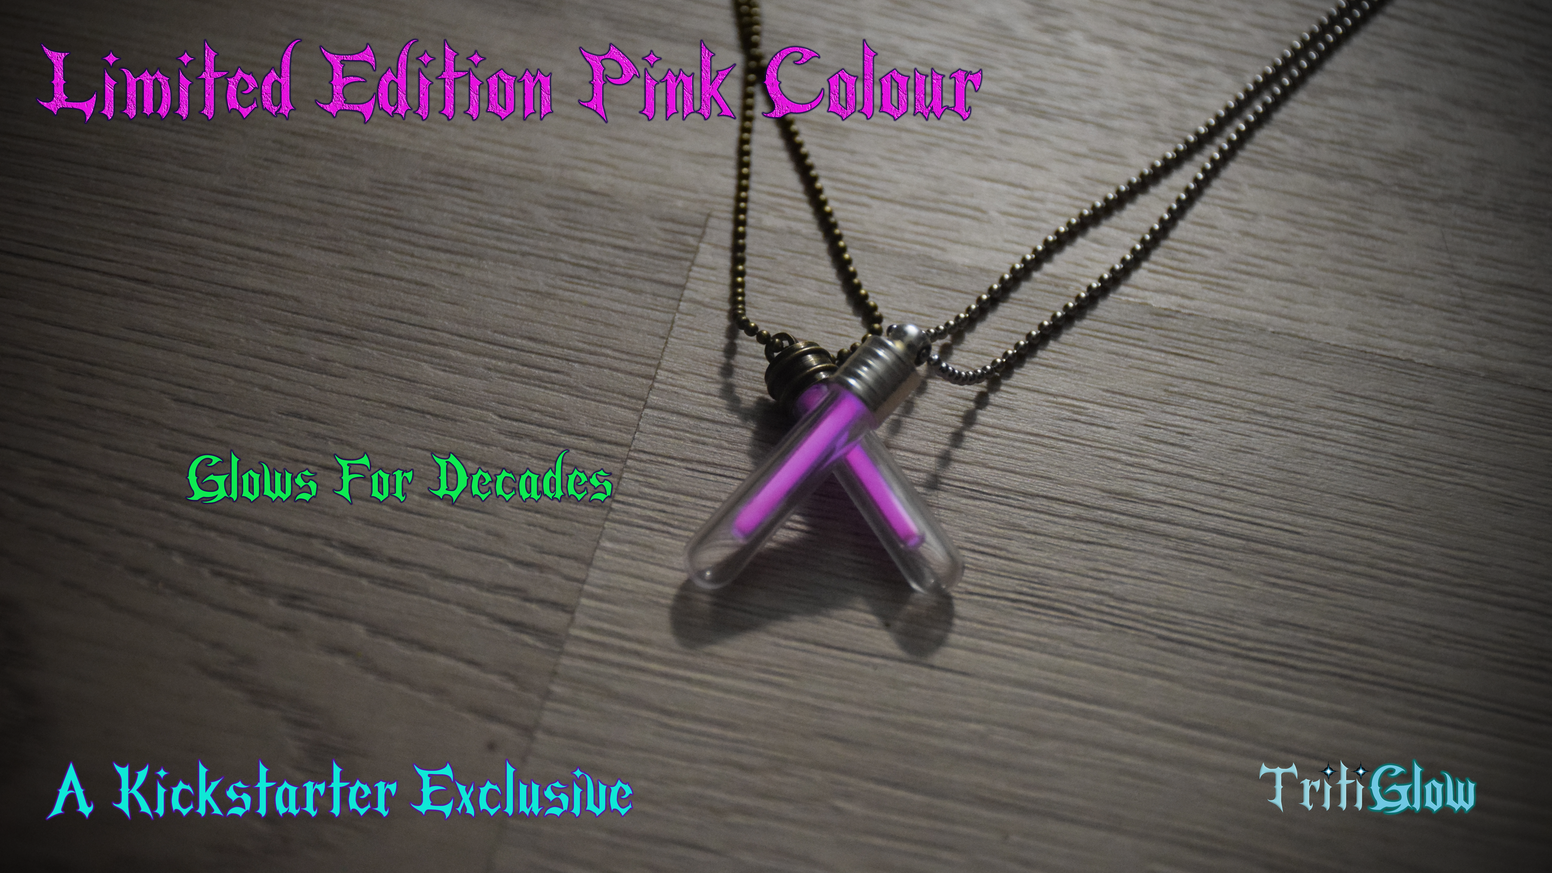 Pendants That Glow For Decades - An  exclusive pink colour (No longer available)